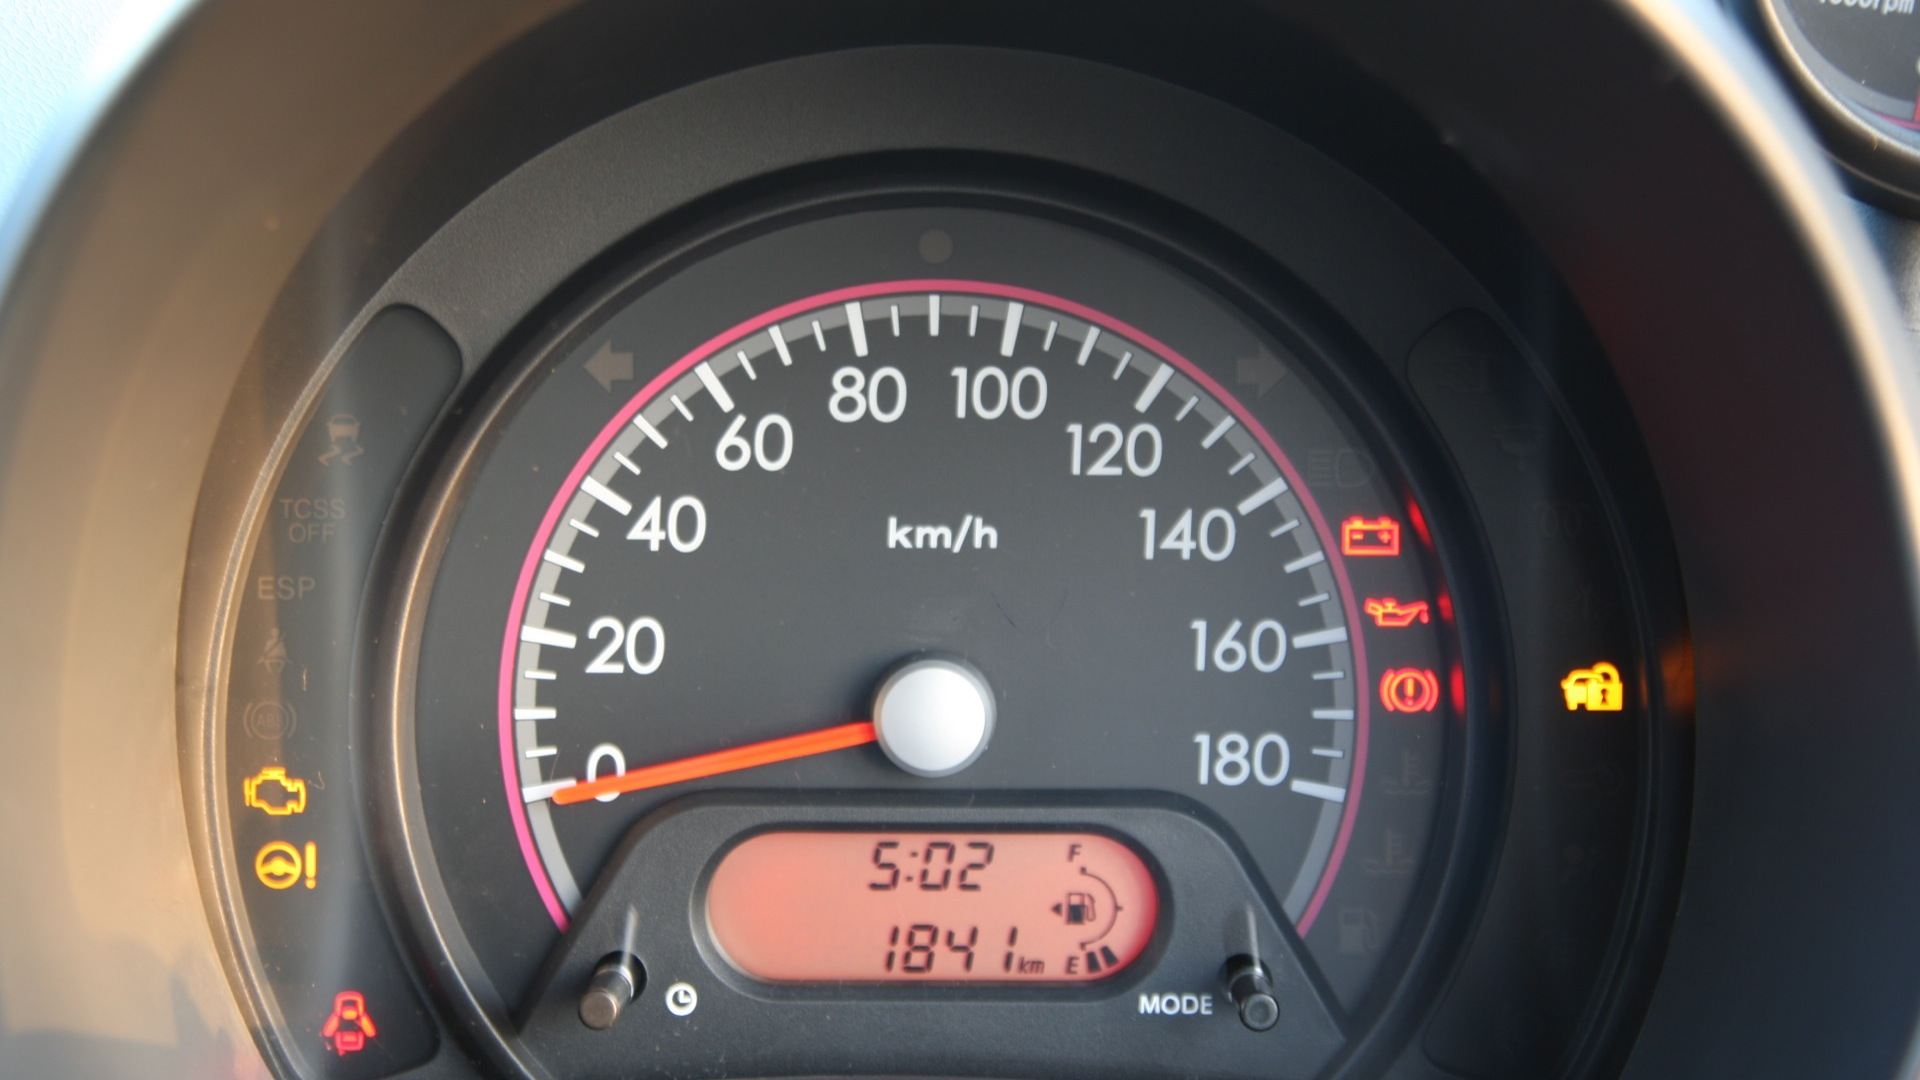 Improve the performance by driving at an ideal speed